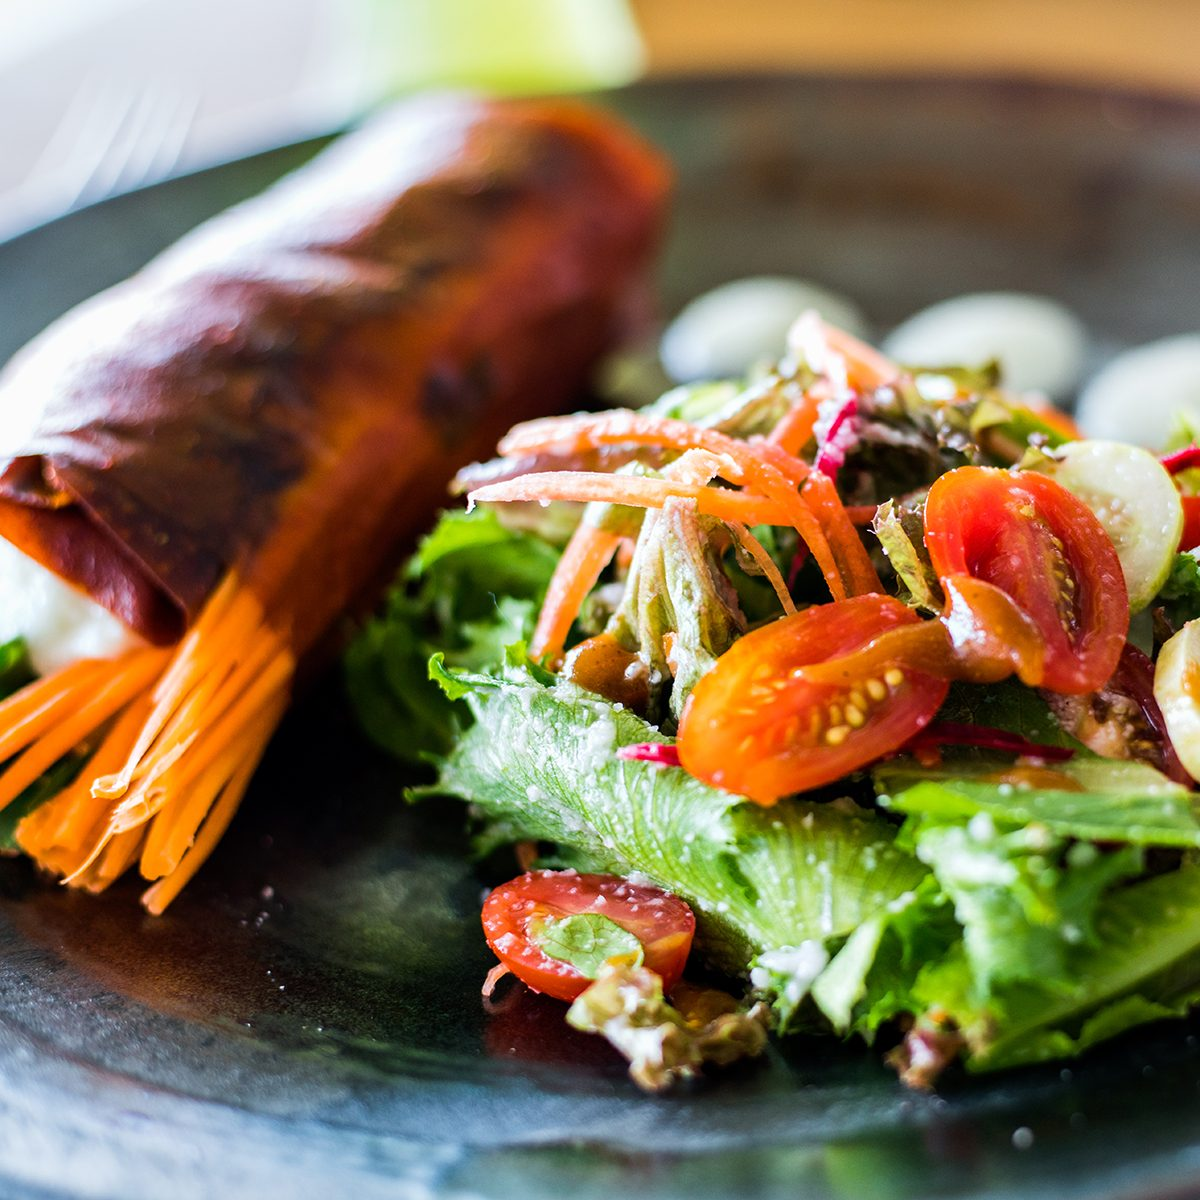 Red pepper wrap